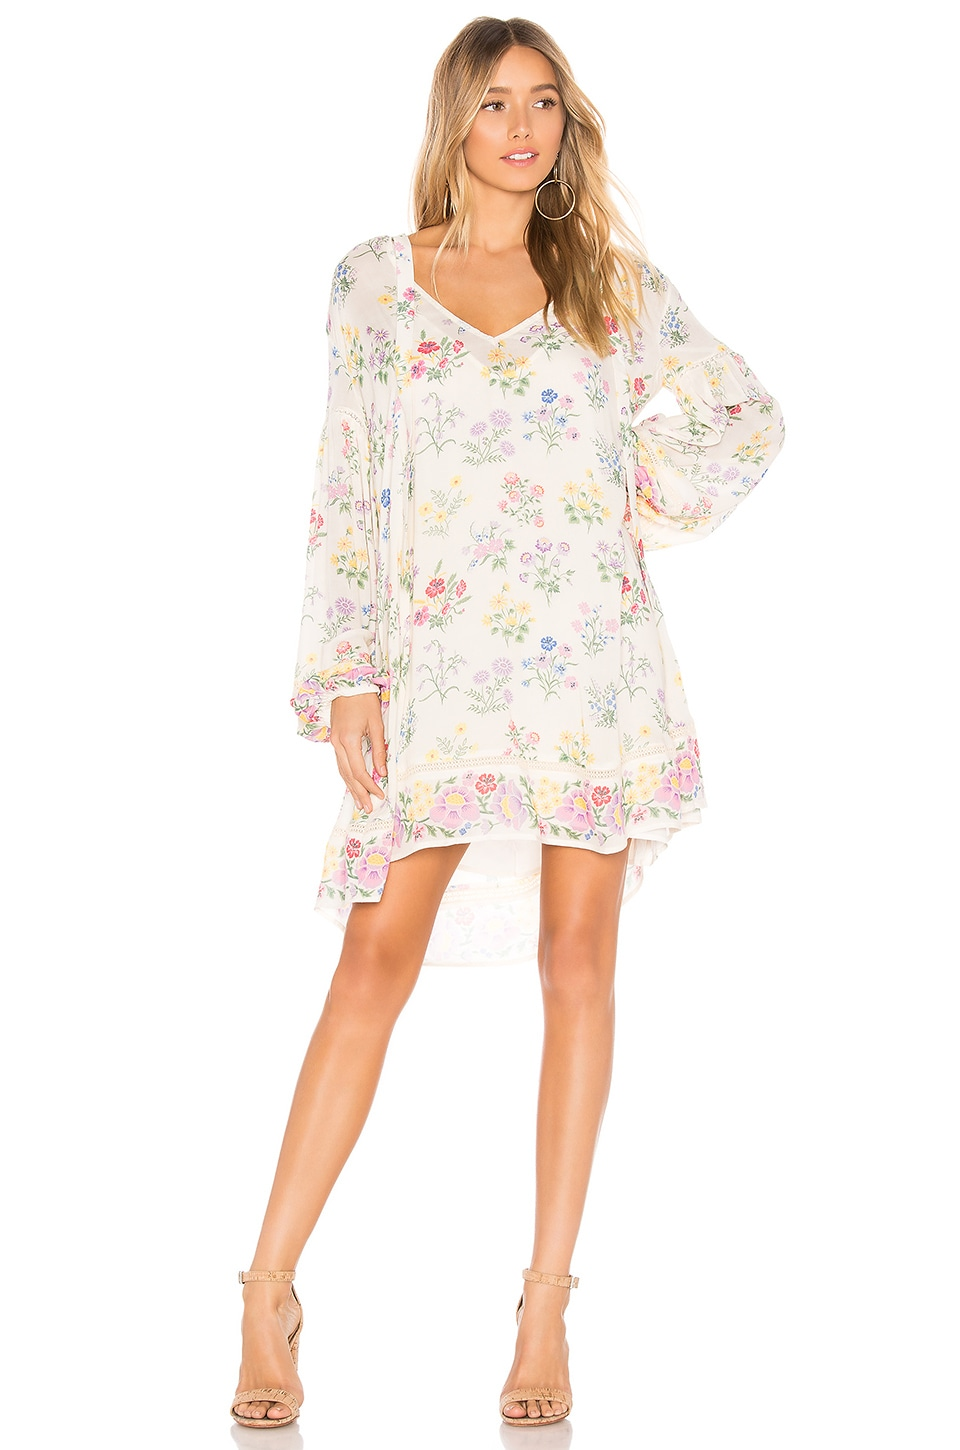 Spell & The Gypsy Collective Posy Long Sleeve Mini Dress in Gardenia